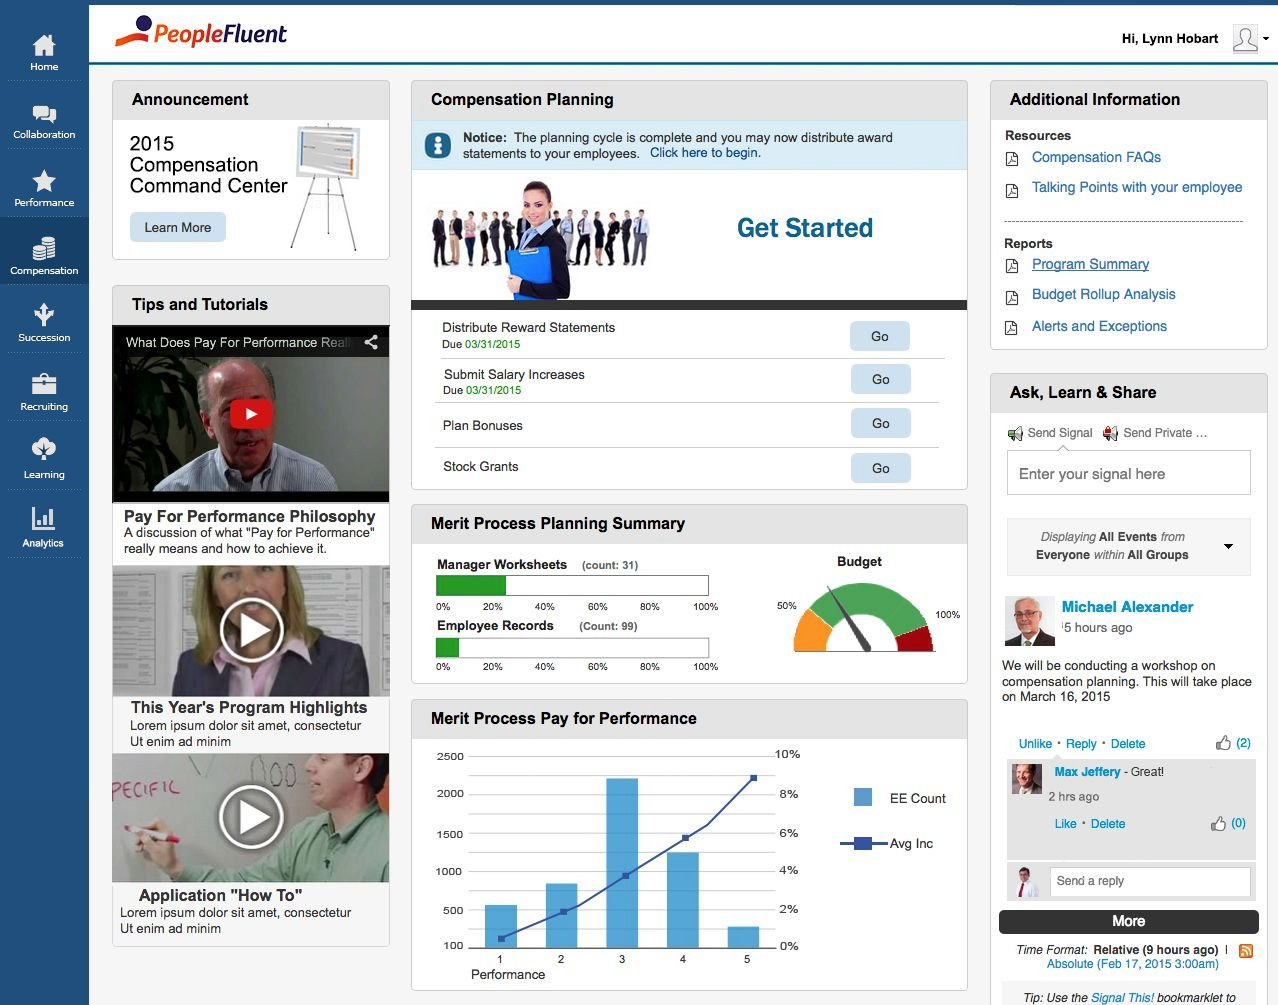 PeopleFluent Demo - PeopleFluent Compensation Dashboard